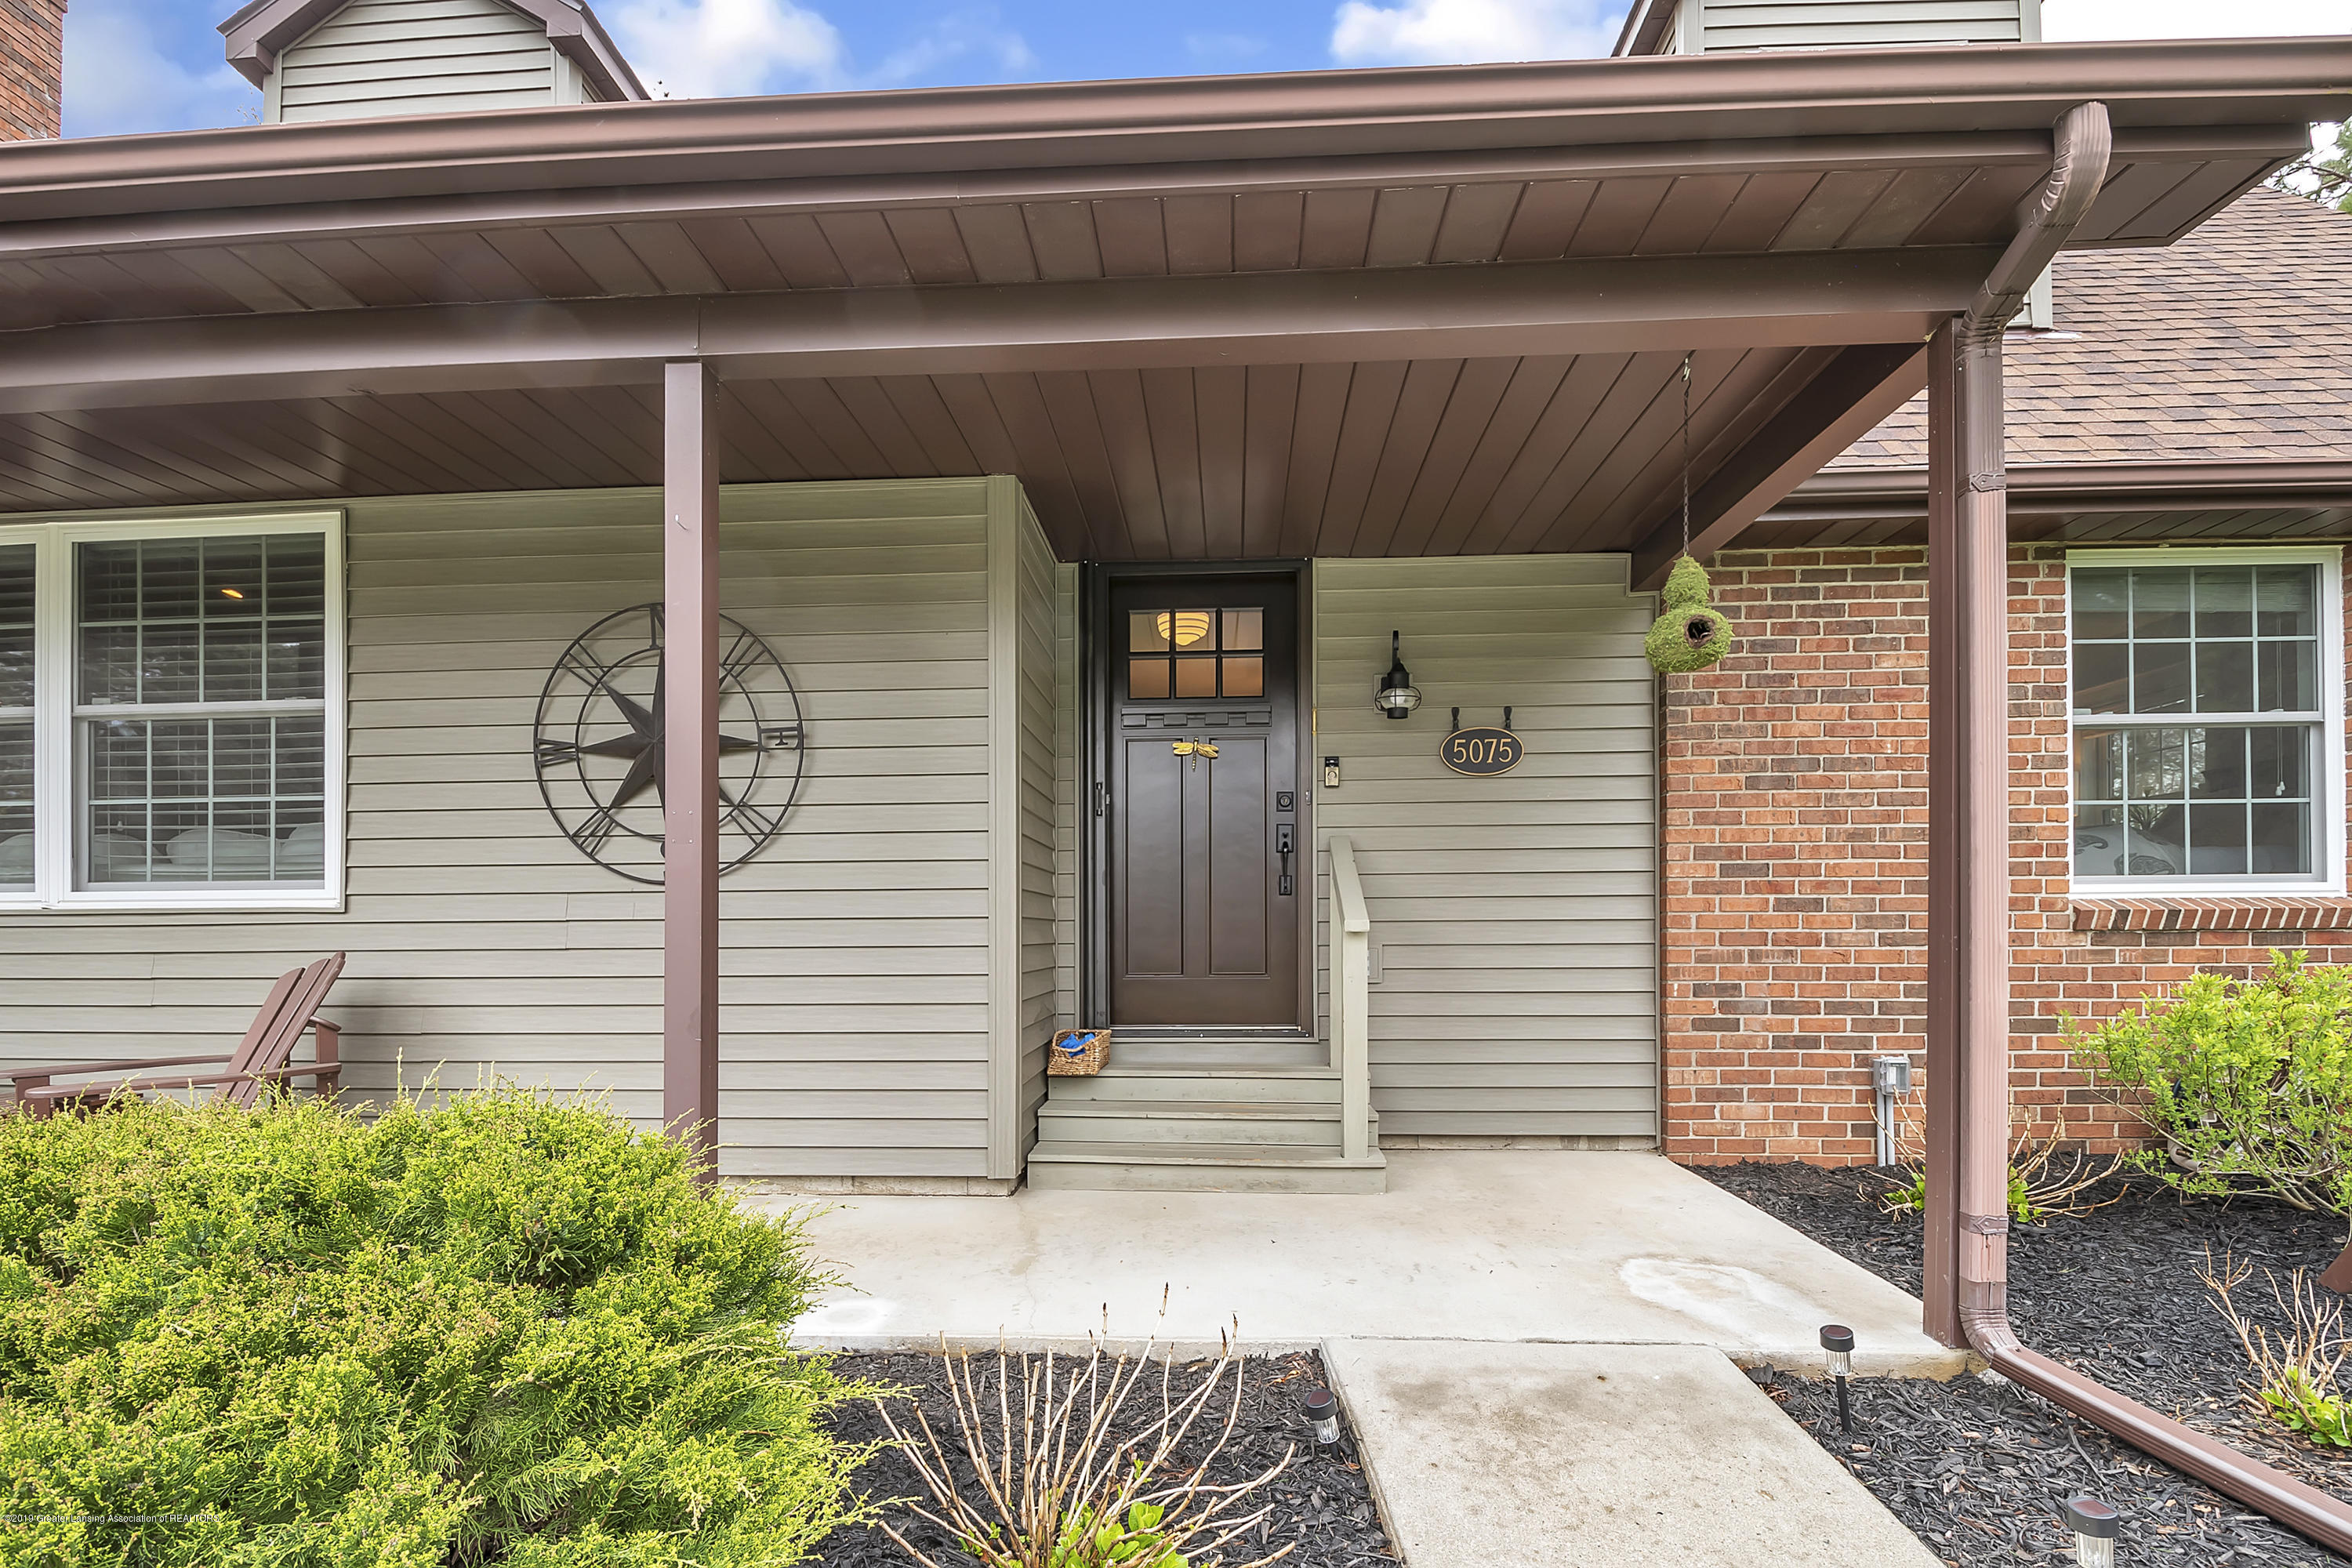 5075 Lake Dr - 5075-Lake-Dr-Owosso-windowstill-7 - 7